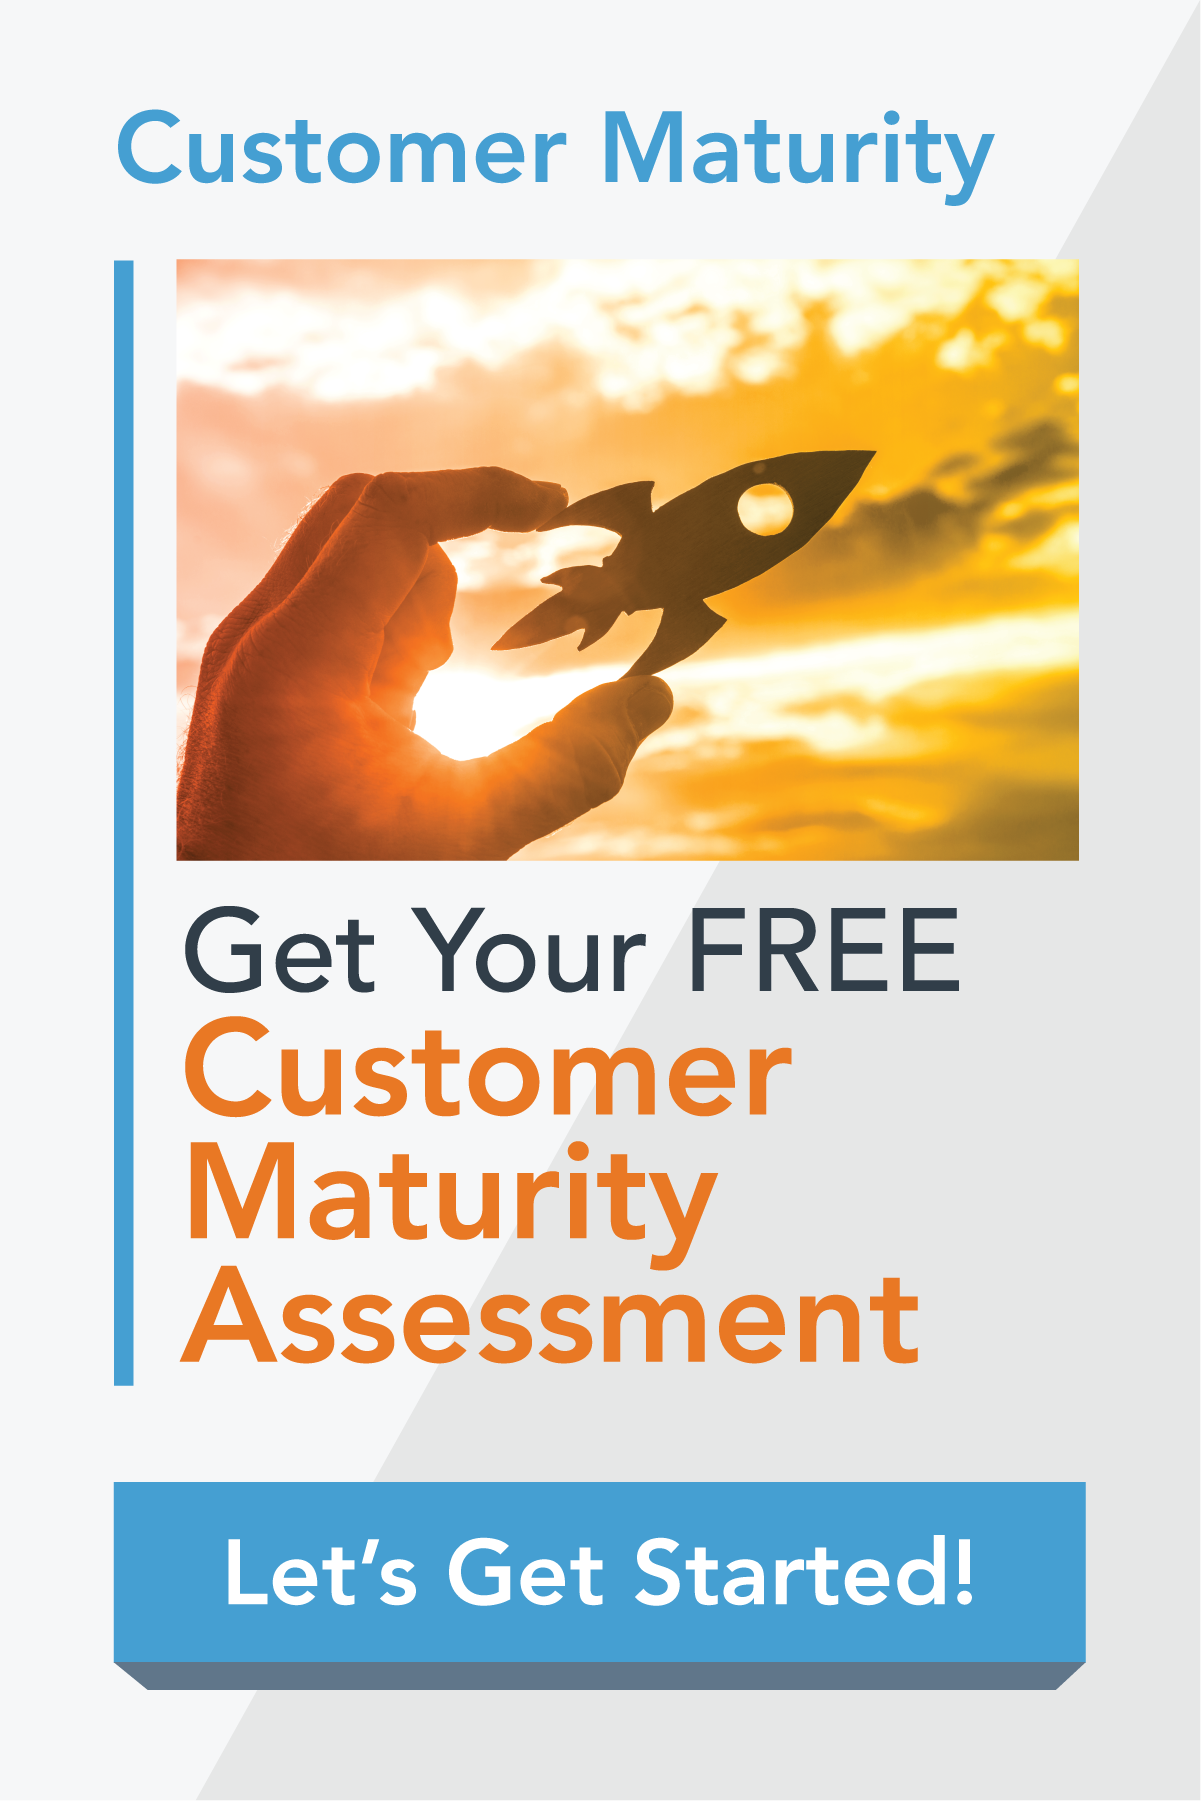 Customer Maturity Assessment